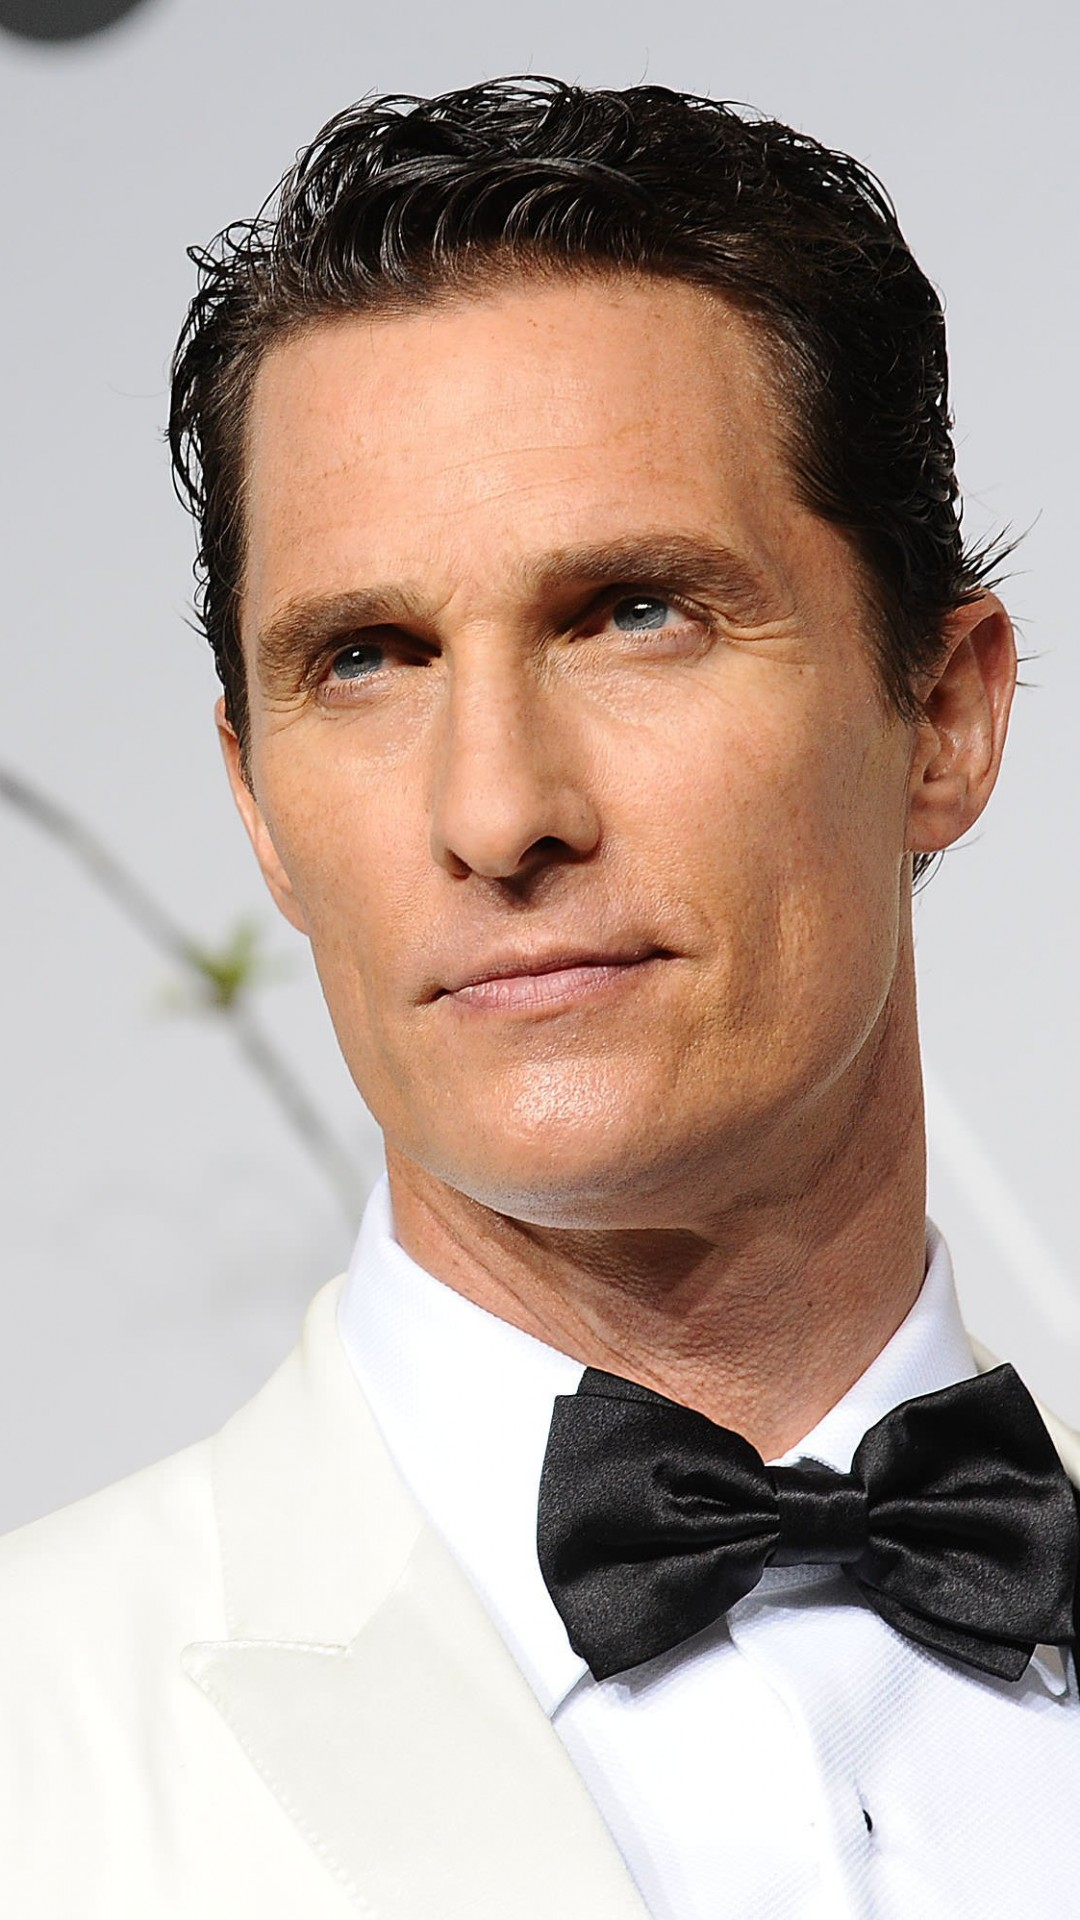 Matthew Mcconaughey in White Tuxedo Wallpaper for Google Nexus 5X